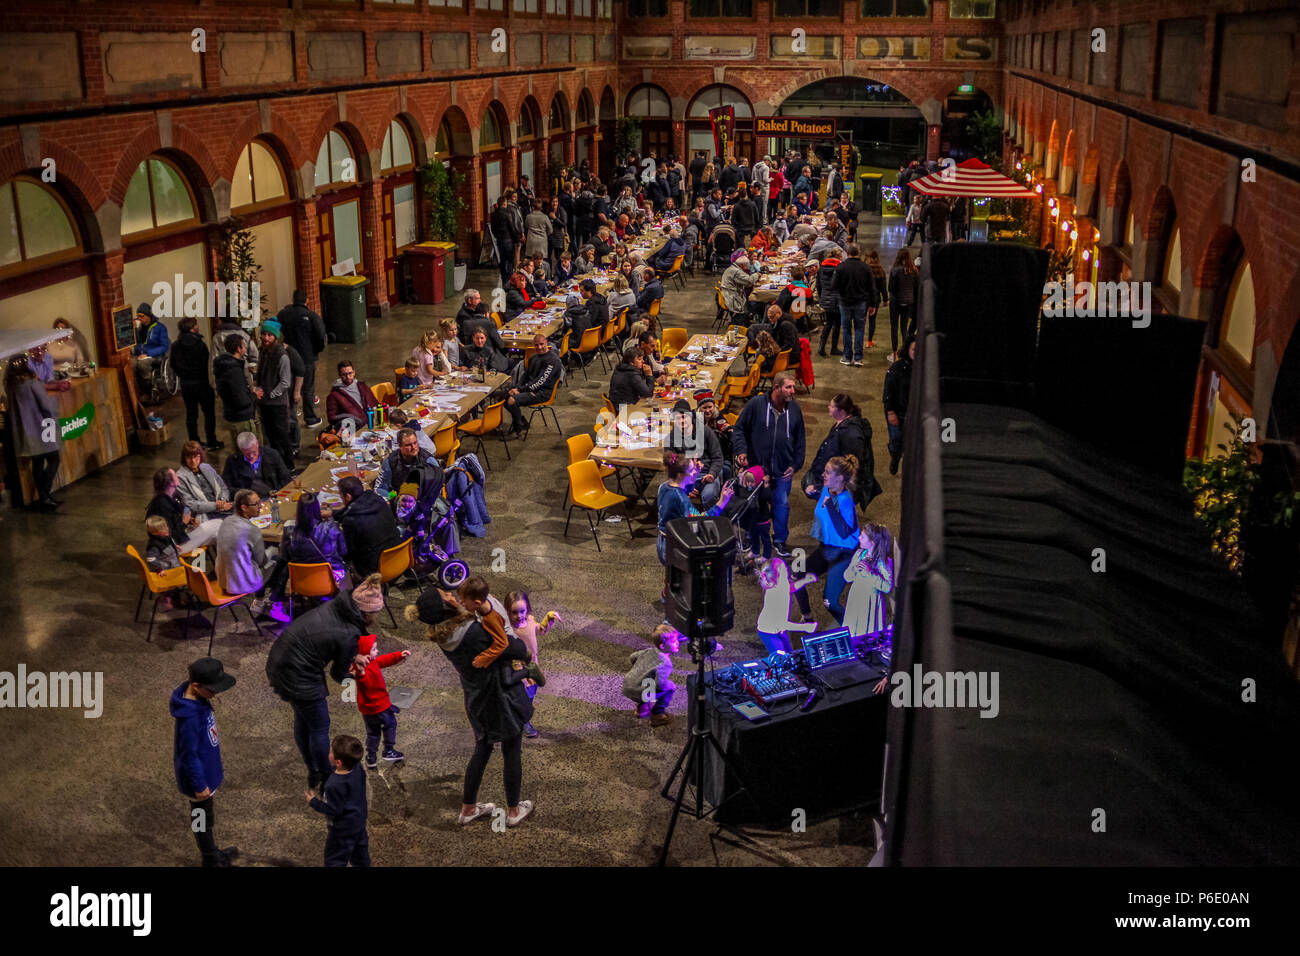 Ballerat, Victoria, Australia, 30 June 2018. Ballarat Potato Festival - 30 June 2018 - Ballarat,Victoria,Australia.Showcasing the versatility of the spud, the Potato Festival will stimulate all your senses and go beyond just fries or potato salad. Think gnocchi, the classic baked potato and more. Experience the potato in a variety of dishes and forms and watch as the produce of the region is put under the spotlight. Credit: brett keating/Alamy Live News - Stock Image